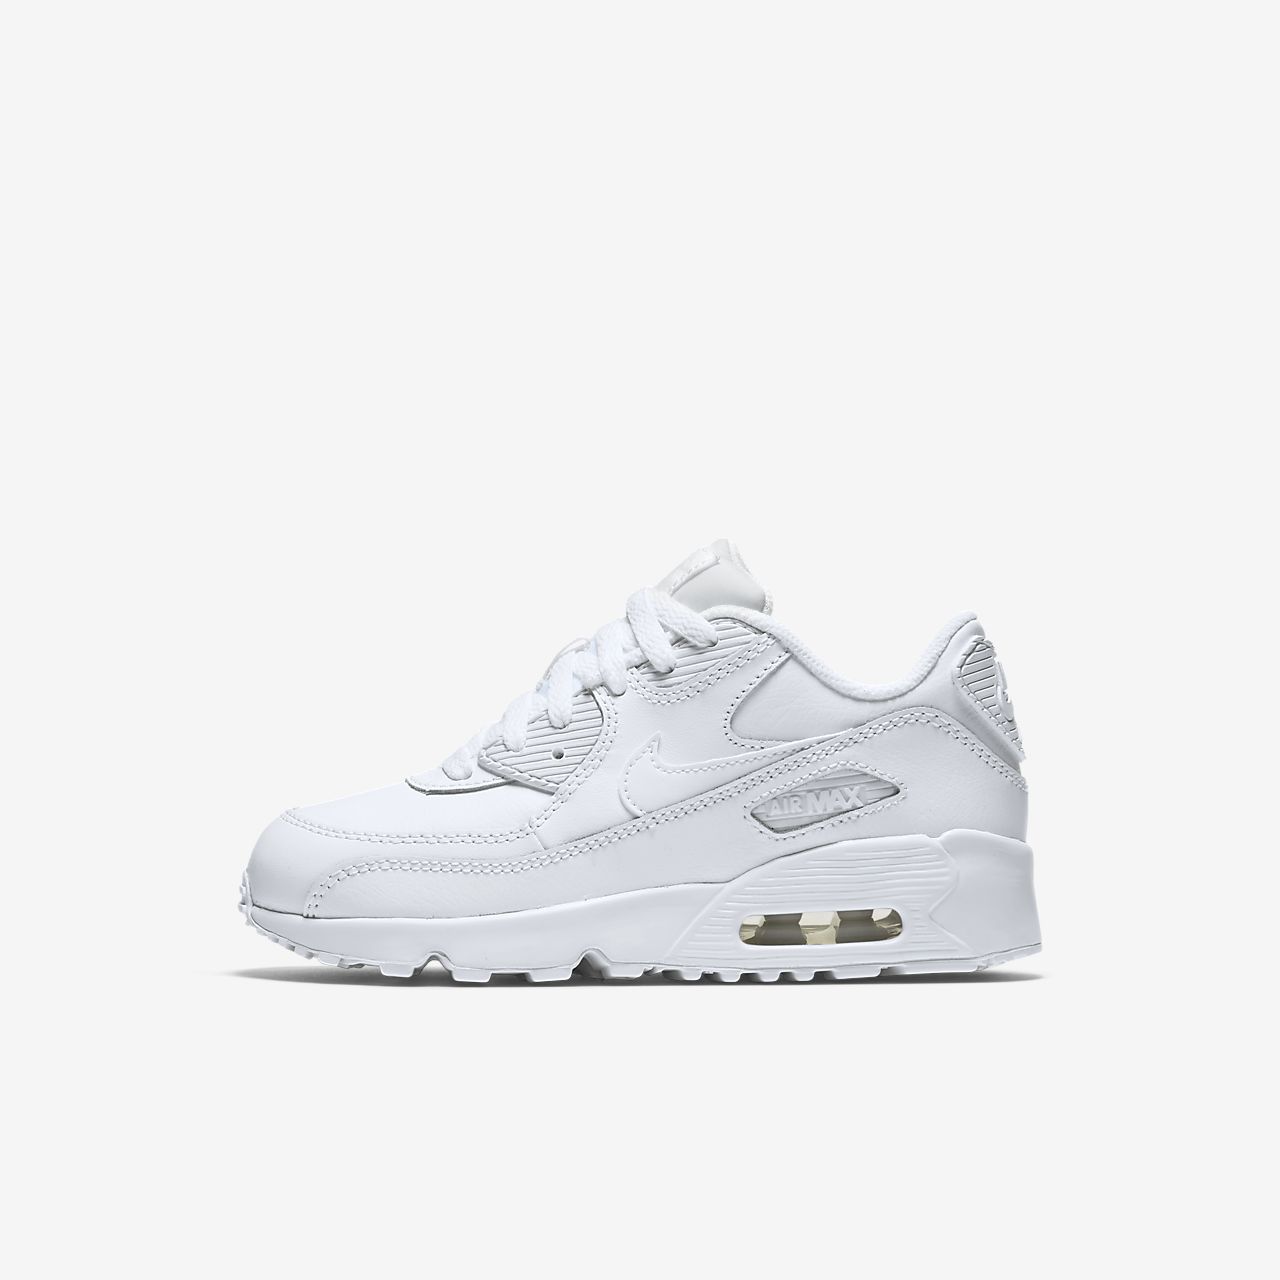 venta reino unido barato para la venta disponible Nike Air Max 90 Leather Little Kids' Shoe